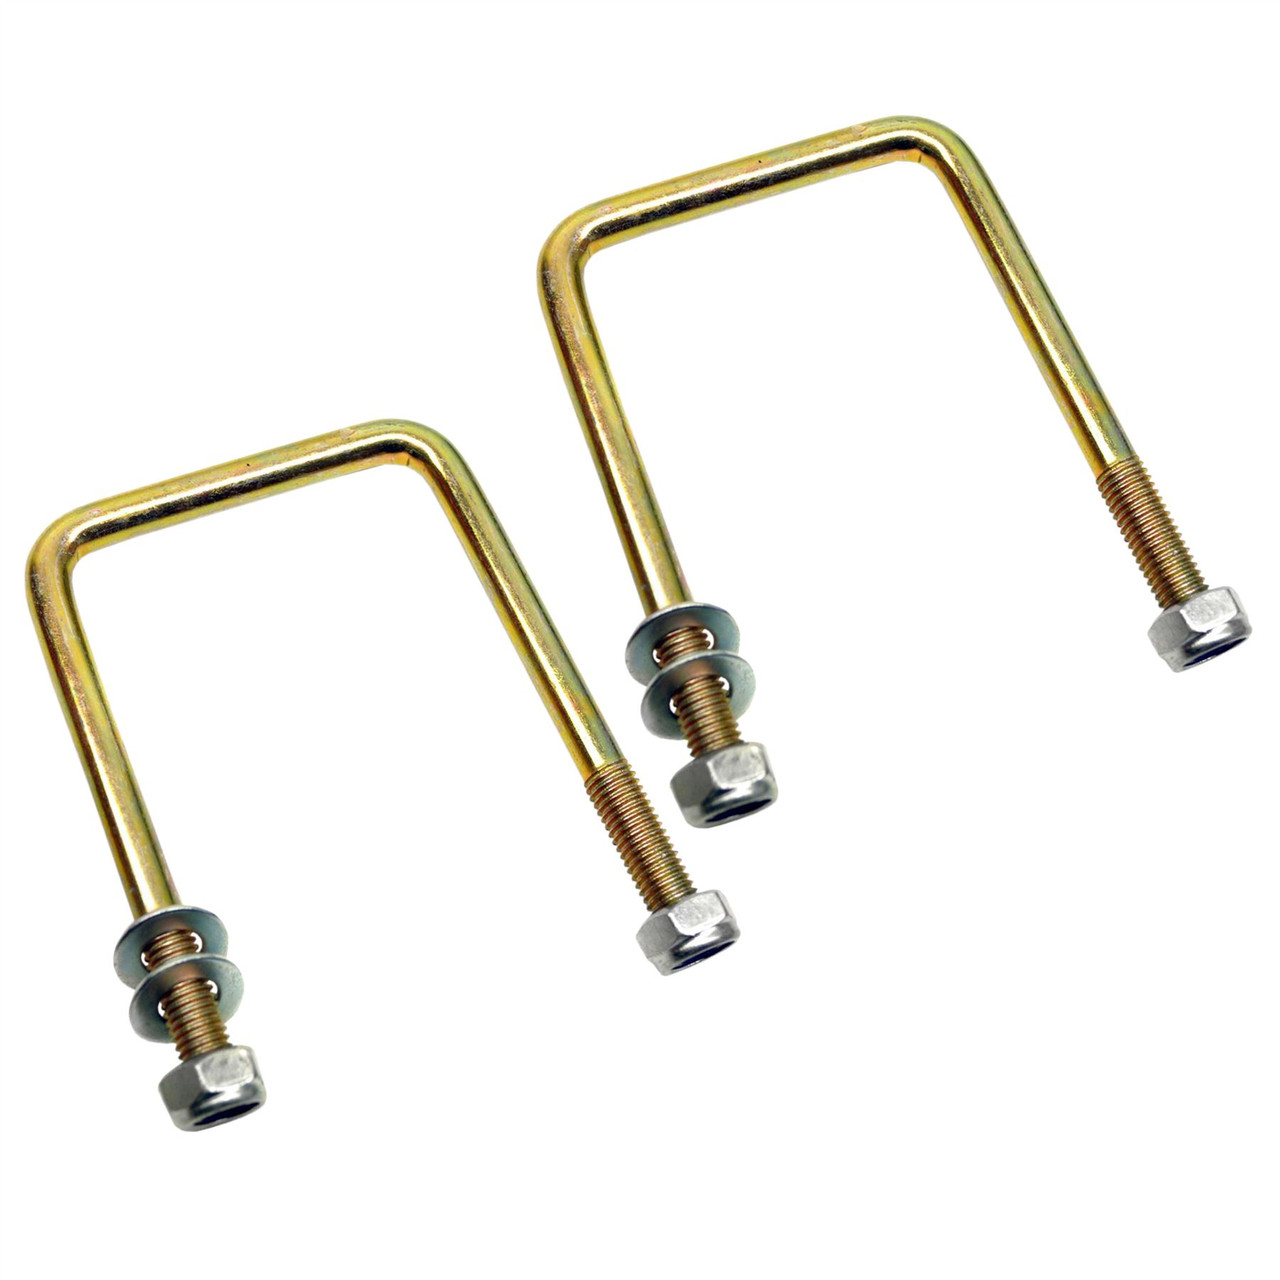 M10 70mm x 100mm UBolt / NBolt for Trailer 1 PAIR with Nuts HIGH TENSILE UBR11